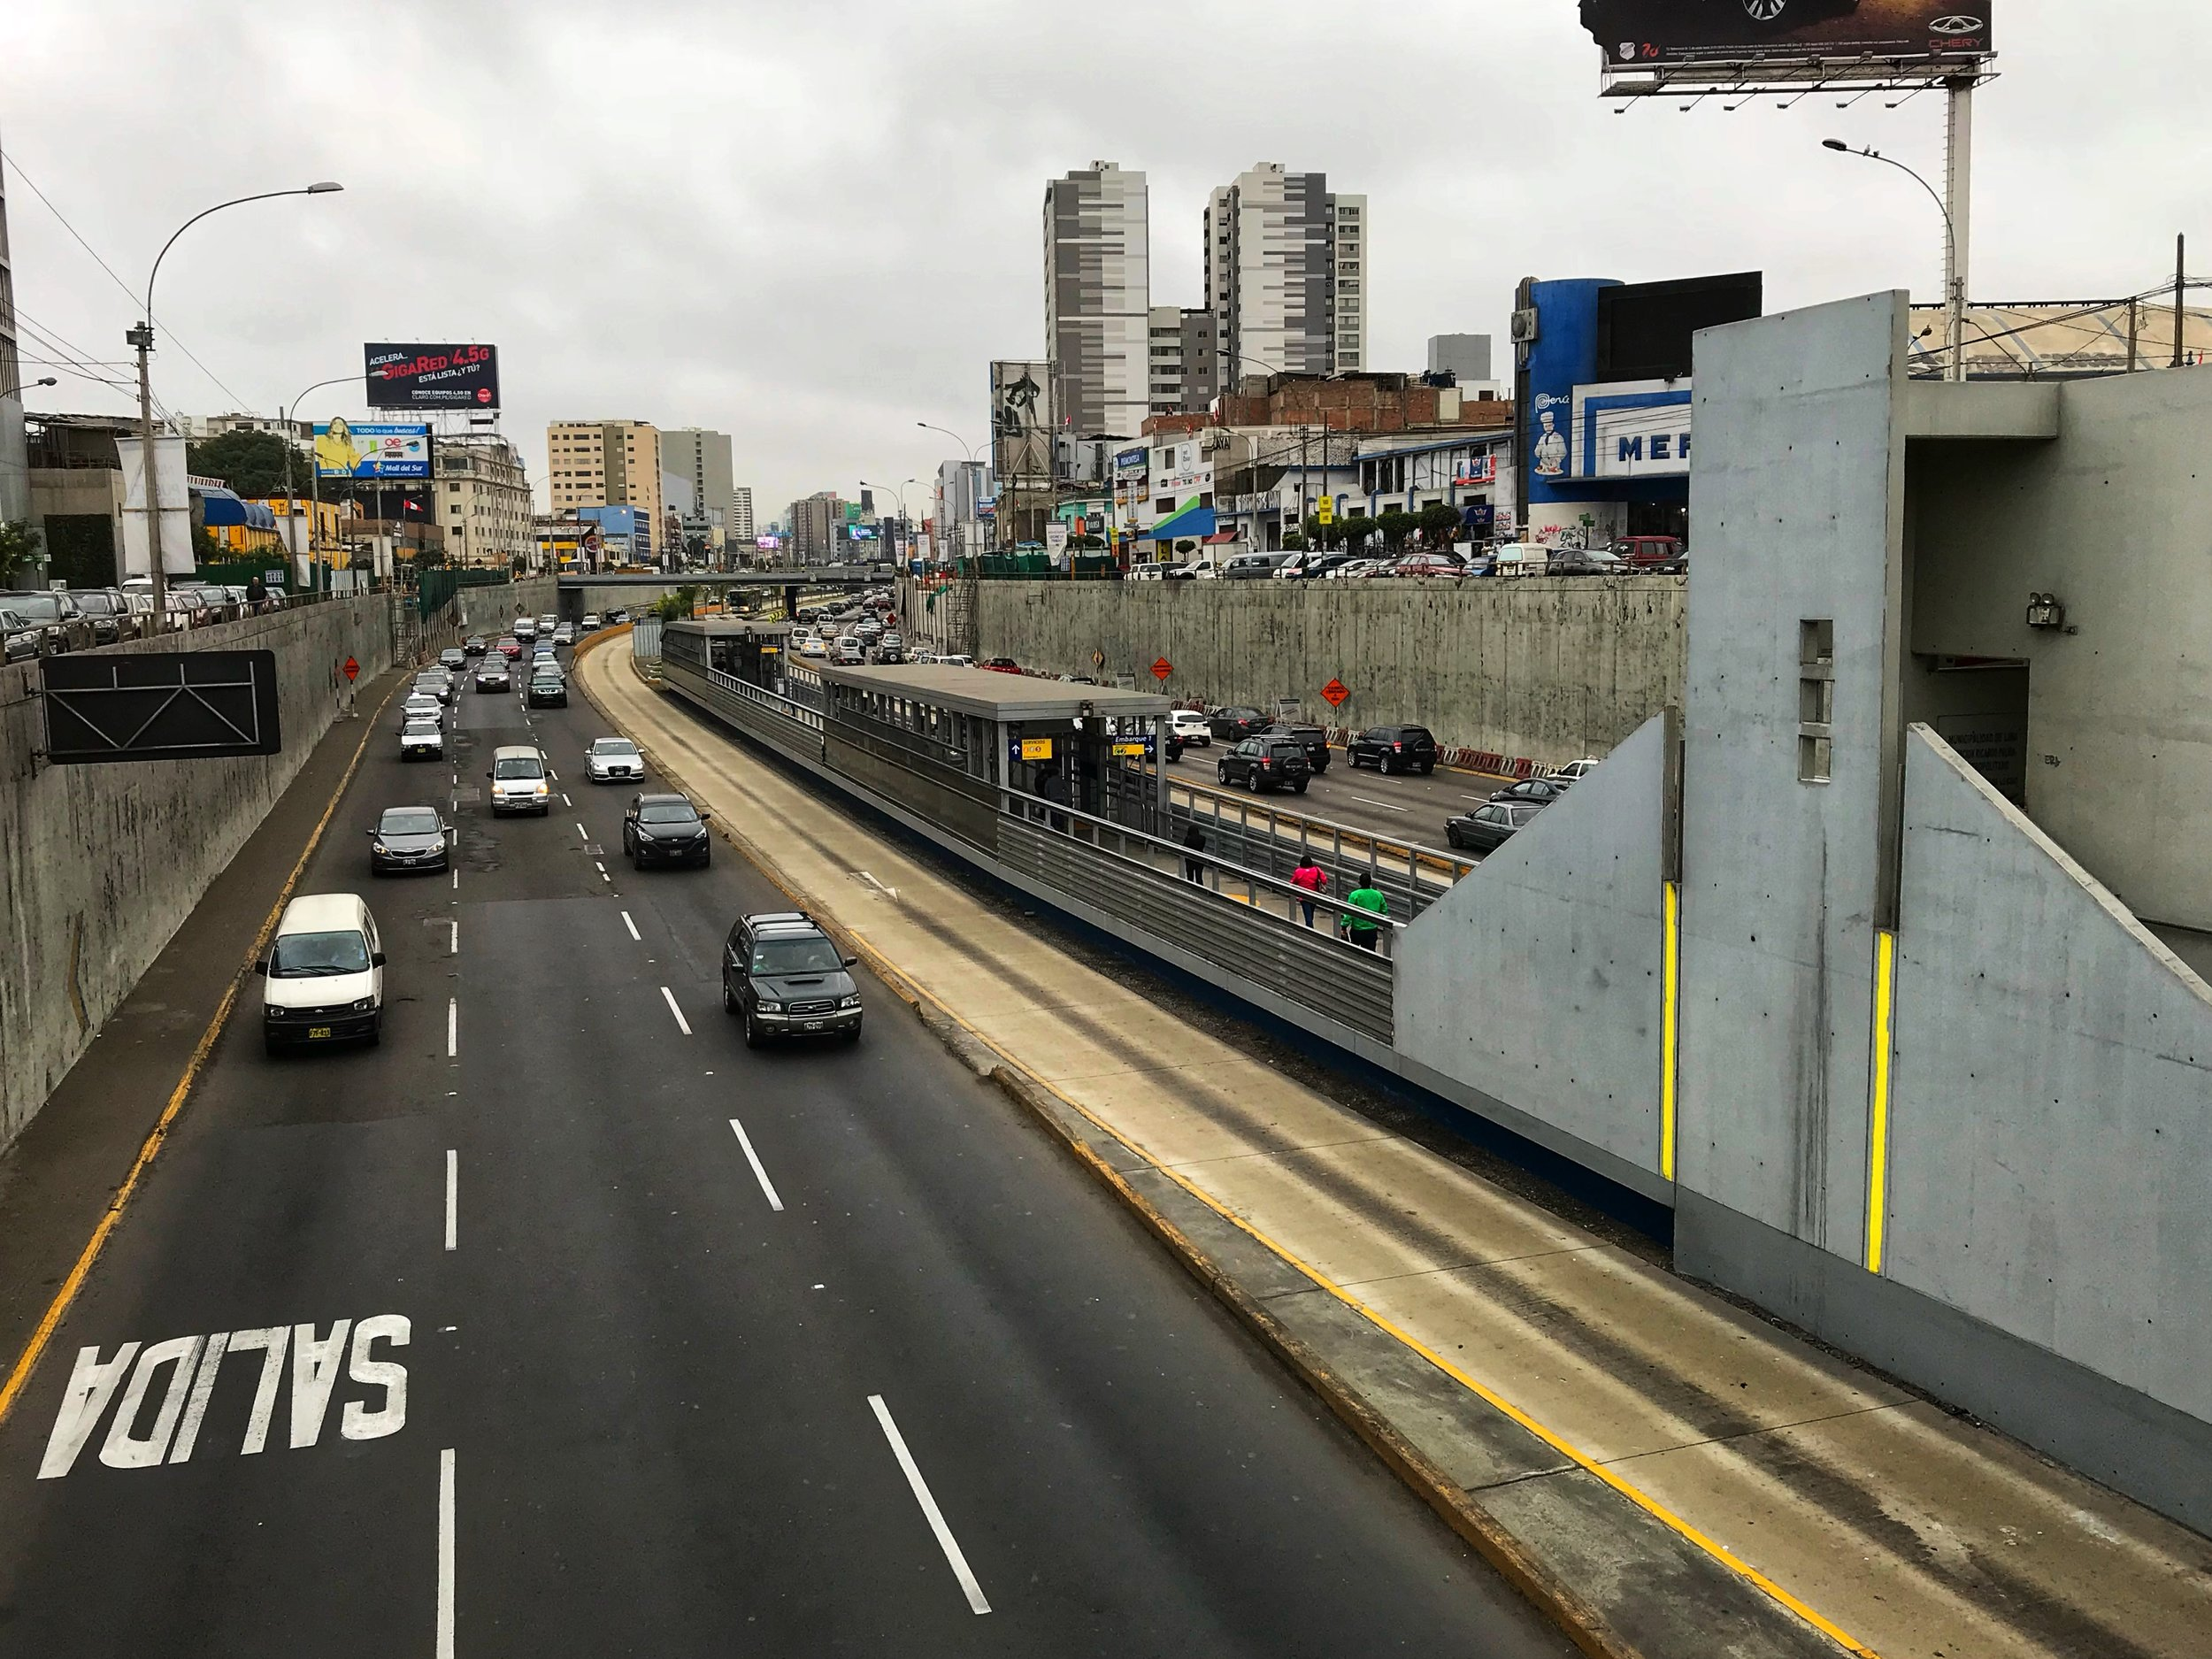 A highway in Lima (the empty lane is for Metropolitano buses)